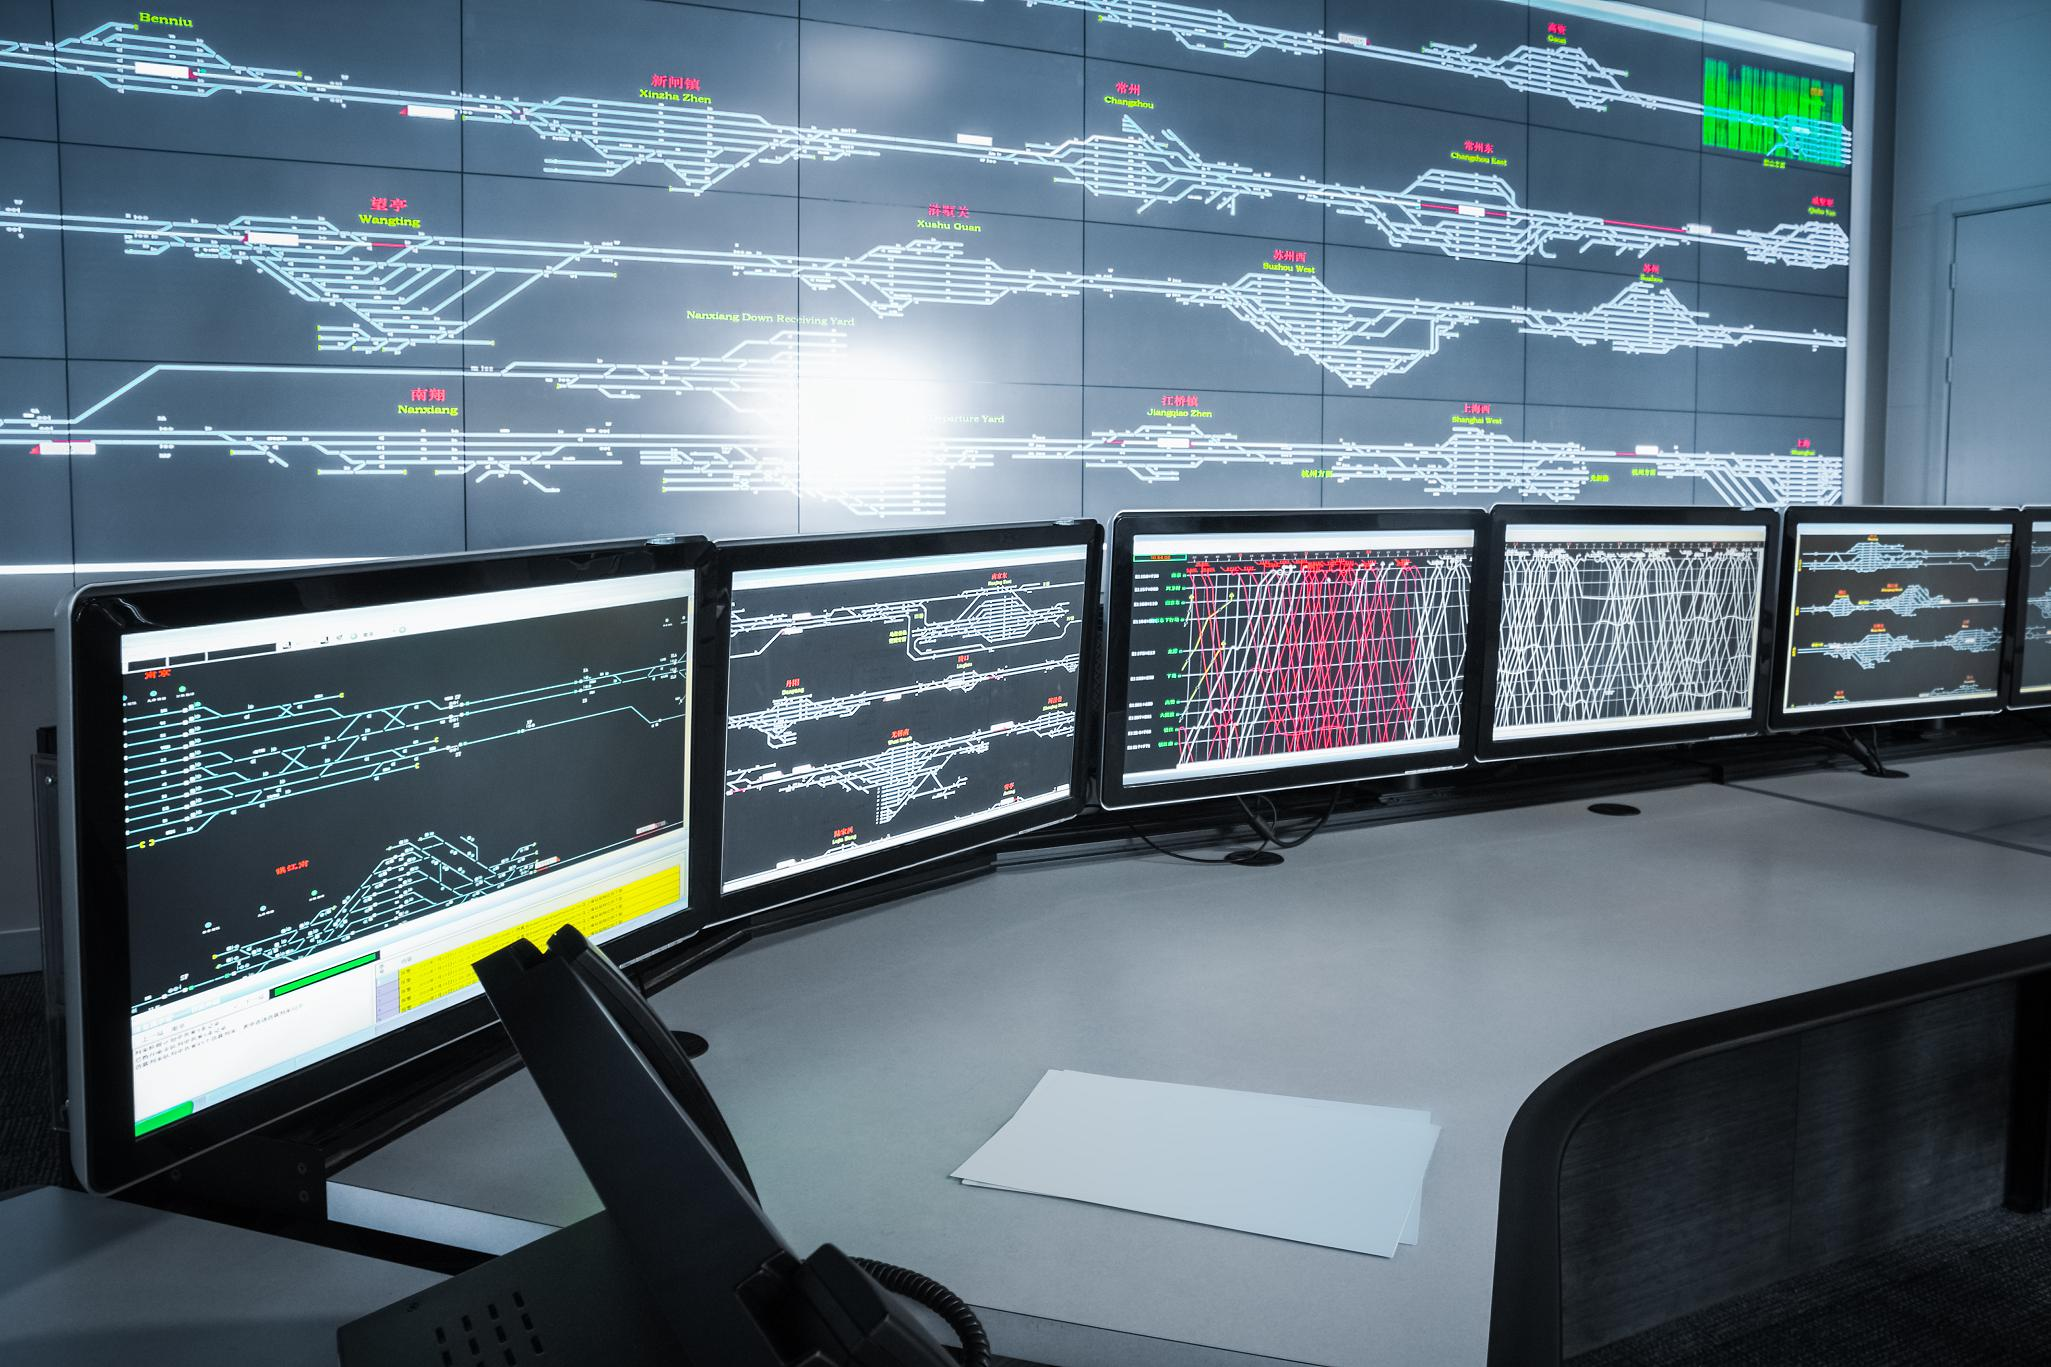 Protecting industrial control systems from cyber attack